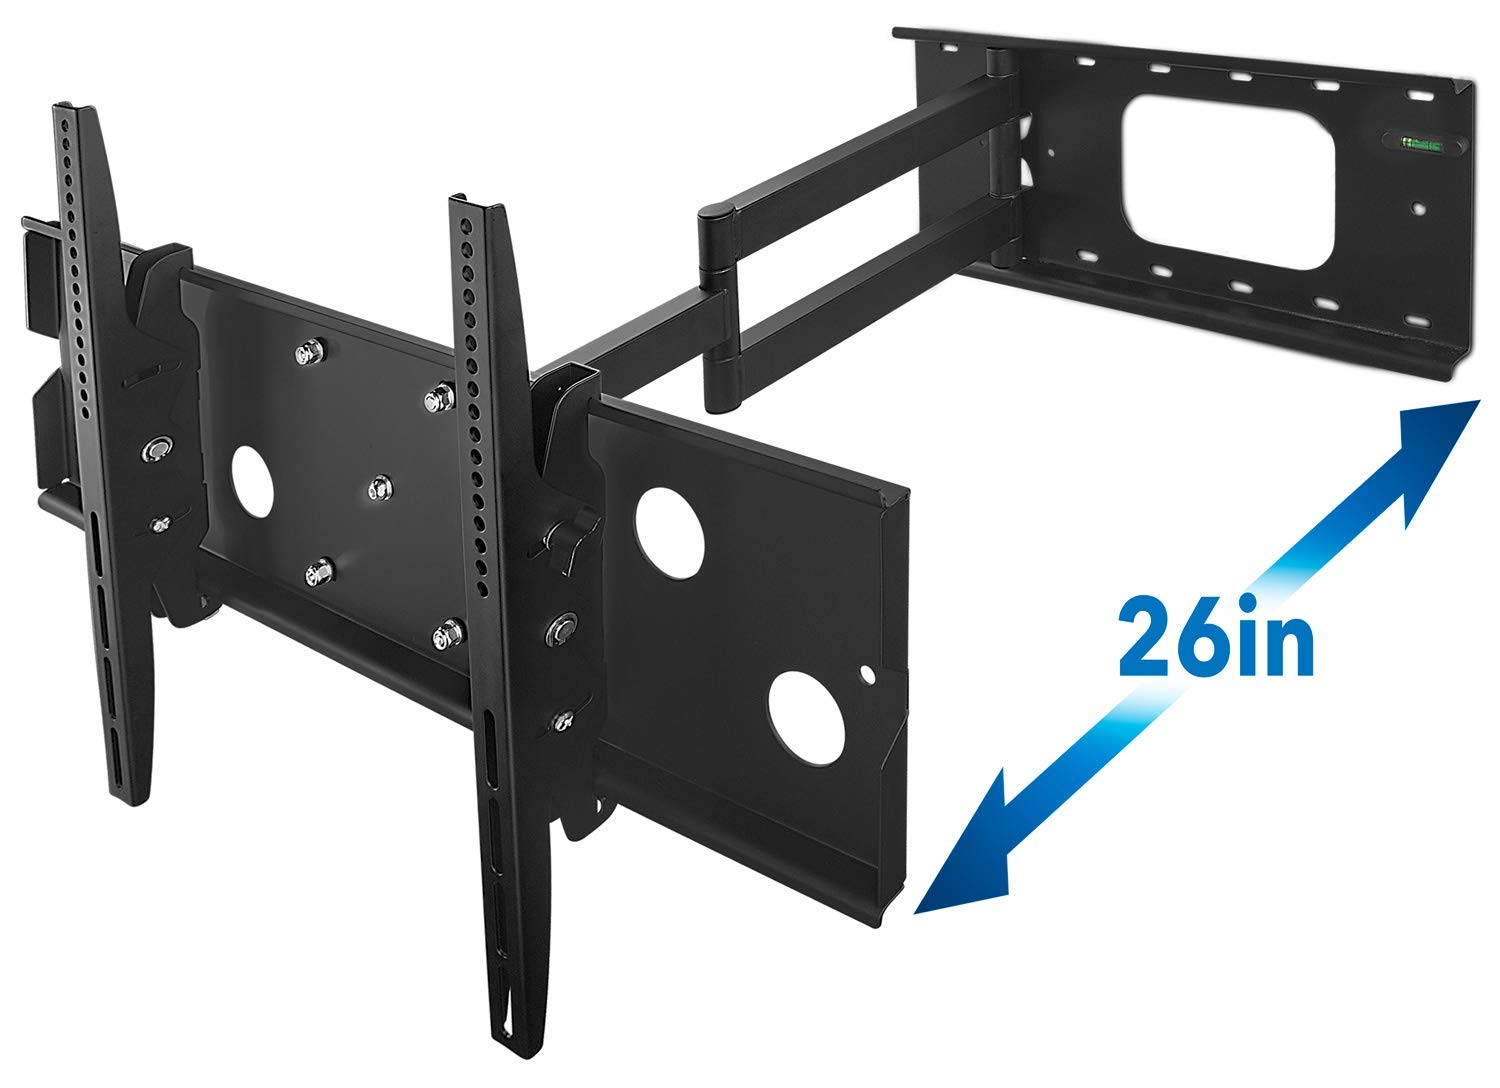 Mount-It! Long Arm TV Wall Mount With 26 Inch Extension, Swing Out Full Motion Design for Corner Installation, Fits 40 50, 55, 60, 65, 70 Inch Flat Screen TVs, 220 Pound Capacity